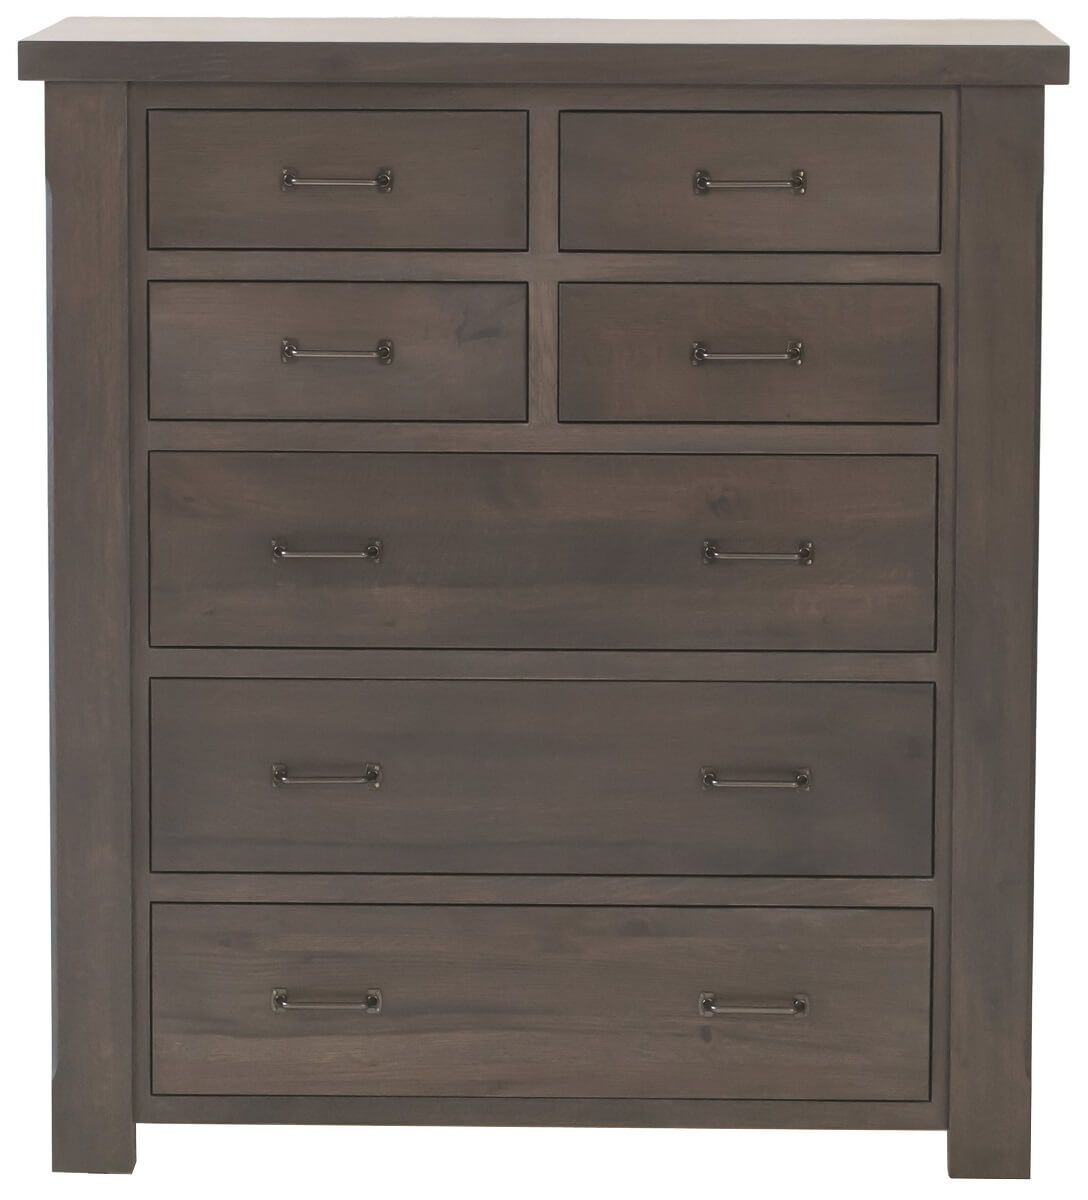 New Milton Chest of Drawers